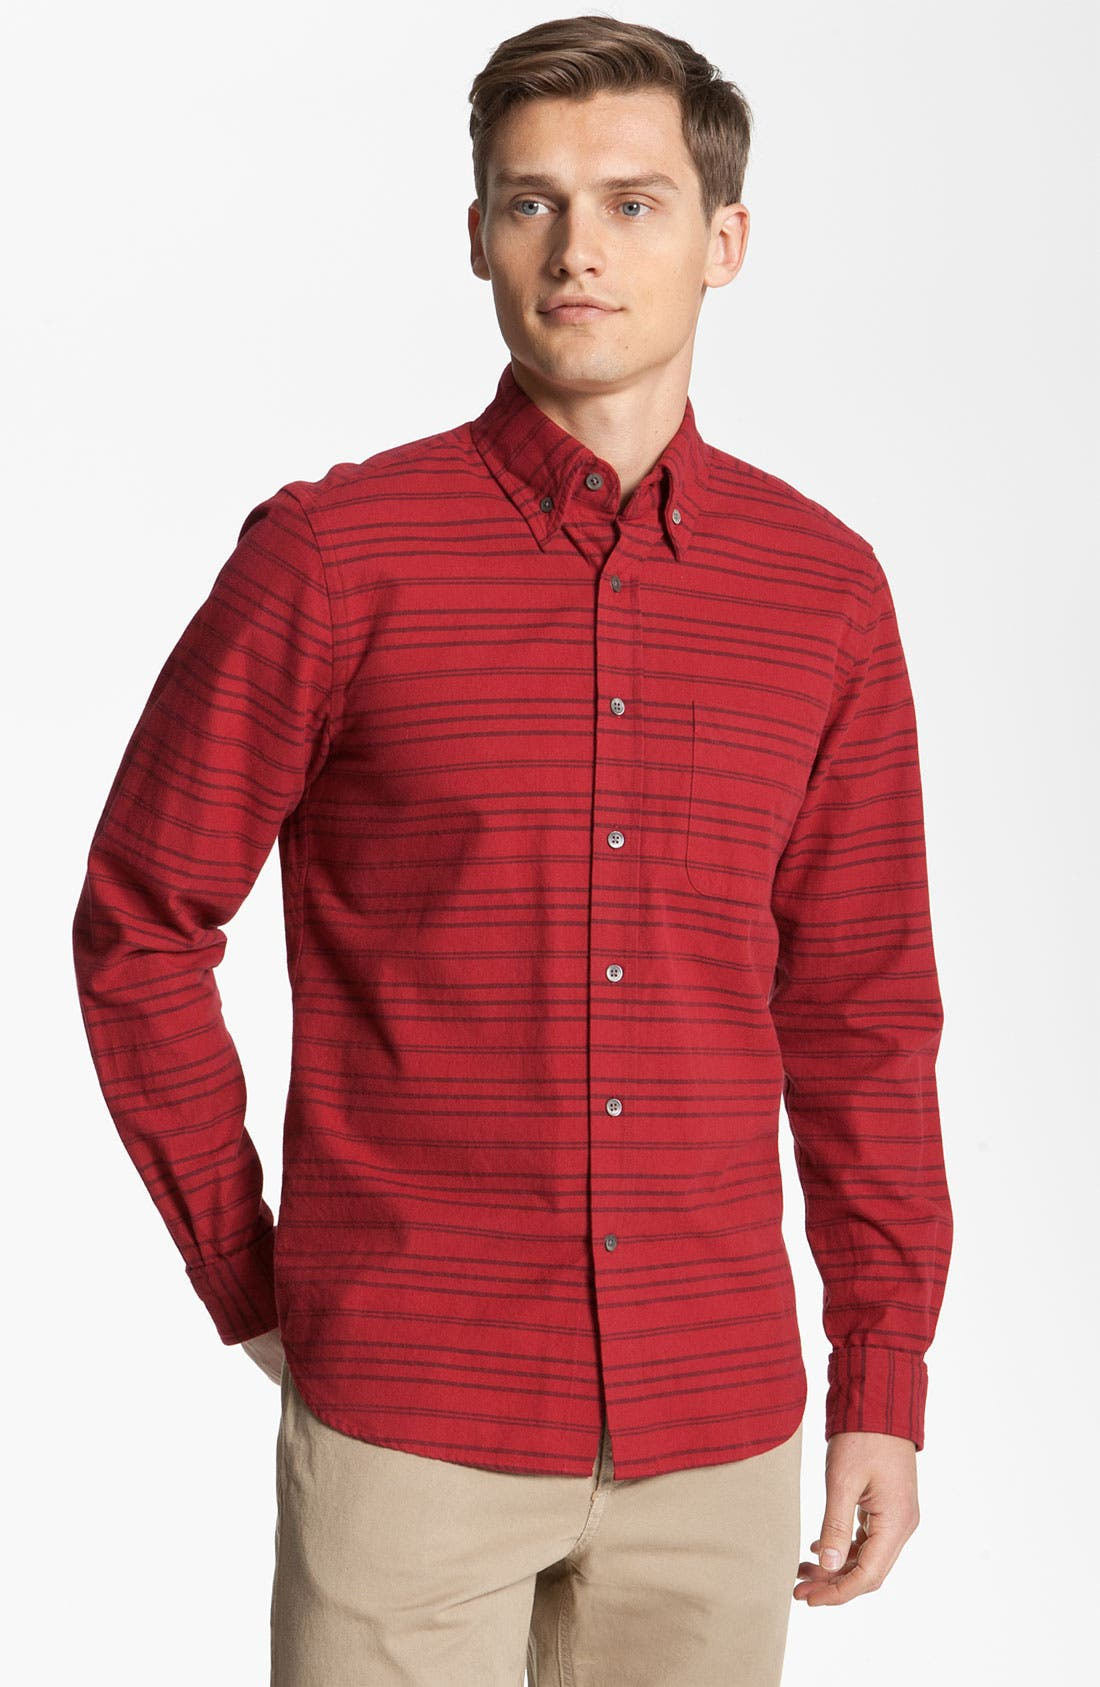 Main Image - Steven Alan 'Collegiate' Stripe Woven Shirt